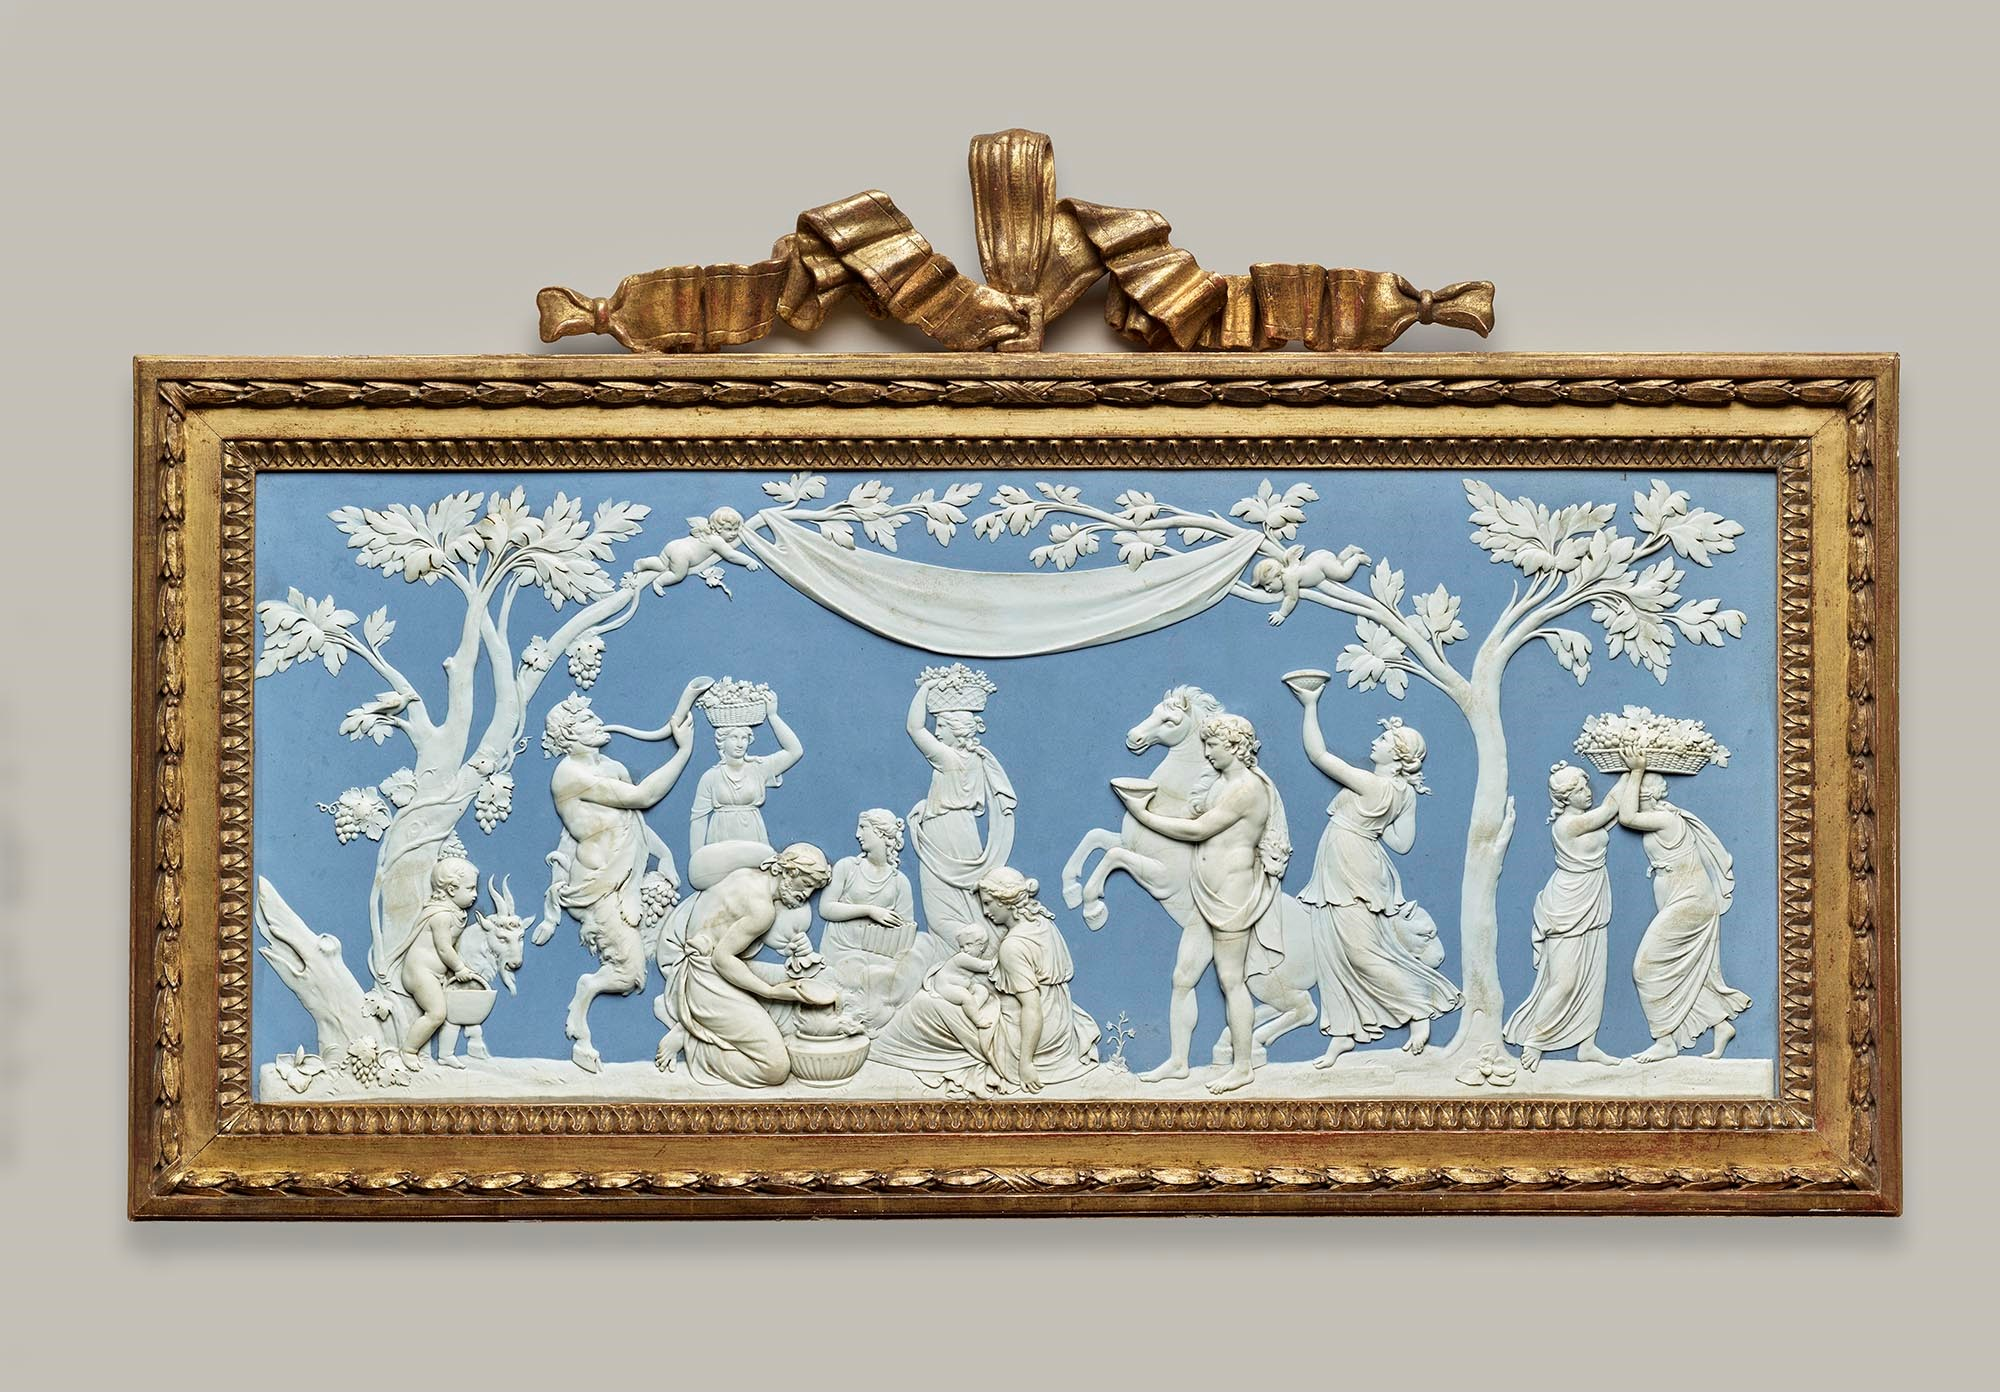 Wedgwood - The Birth of Bacchus